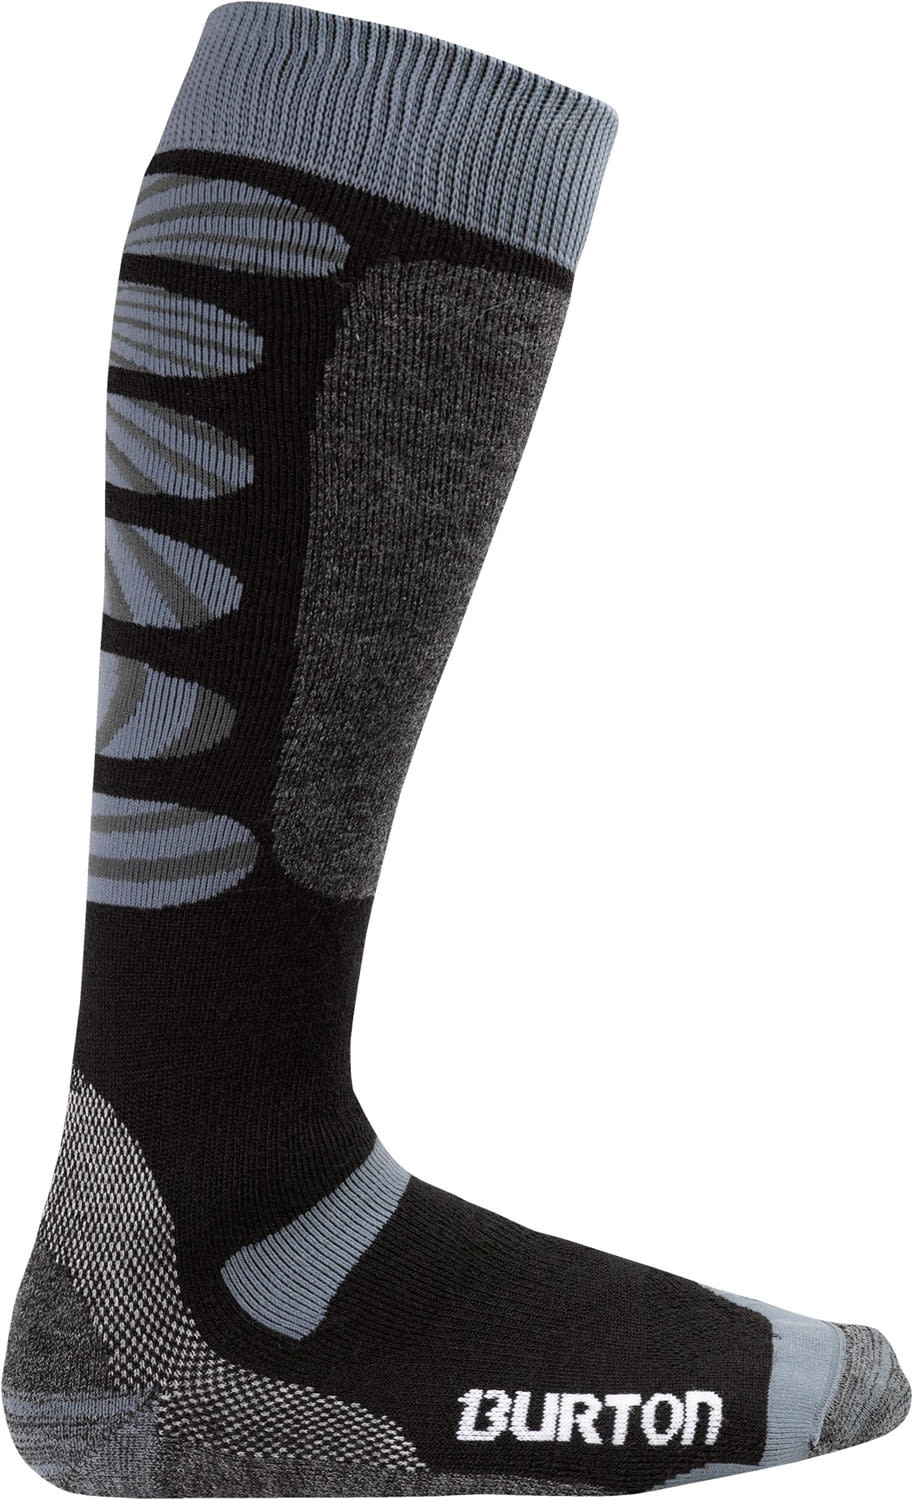 Shop for Burton Buffer II Socks True Black - Men's